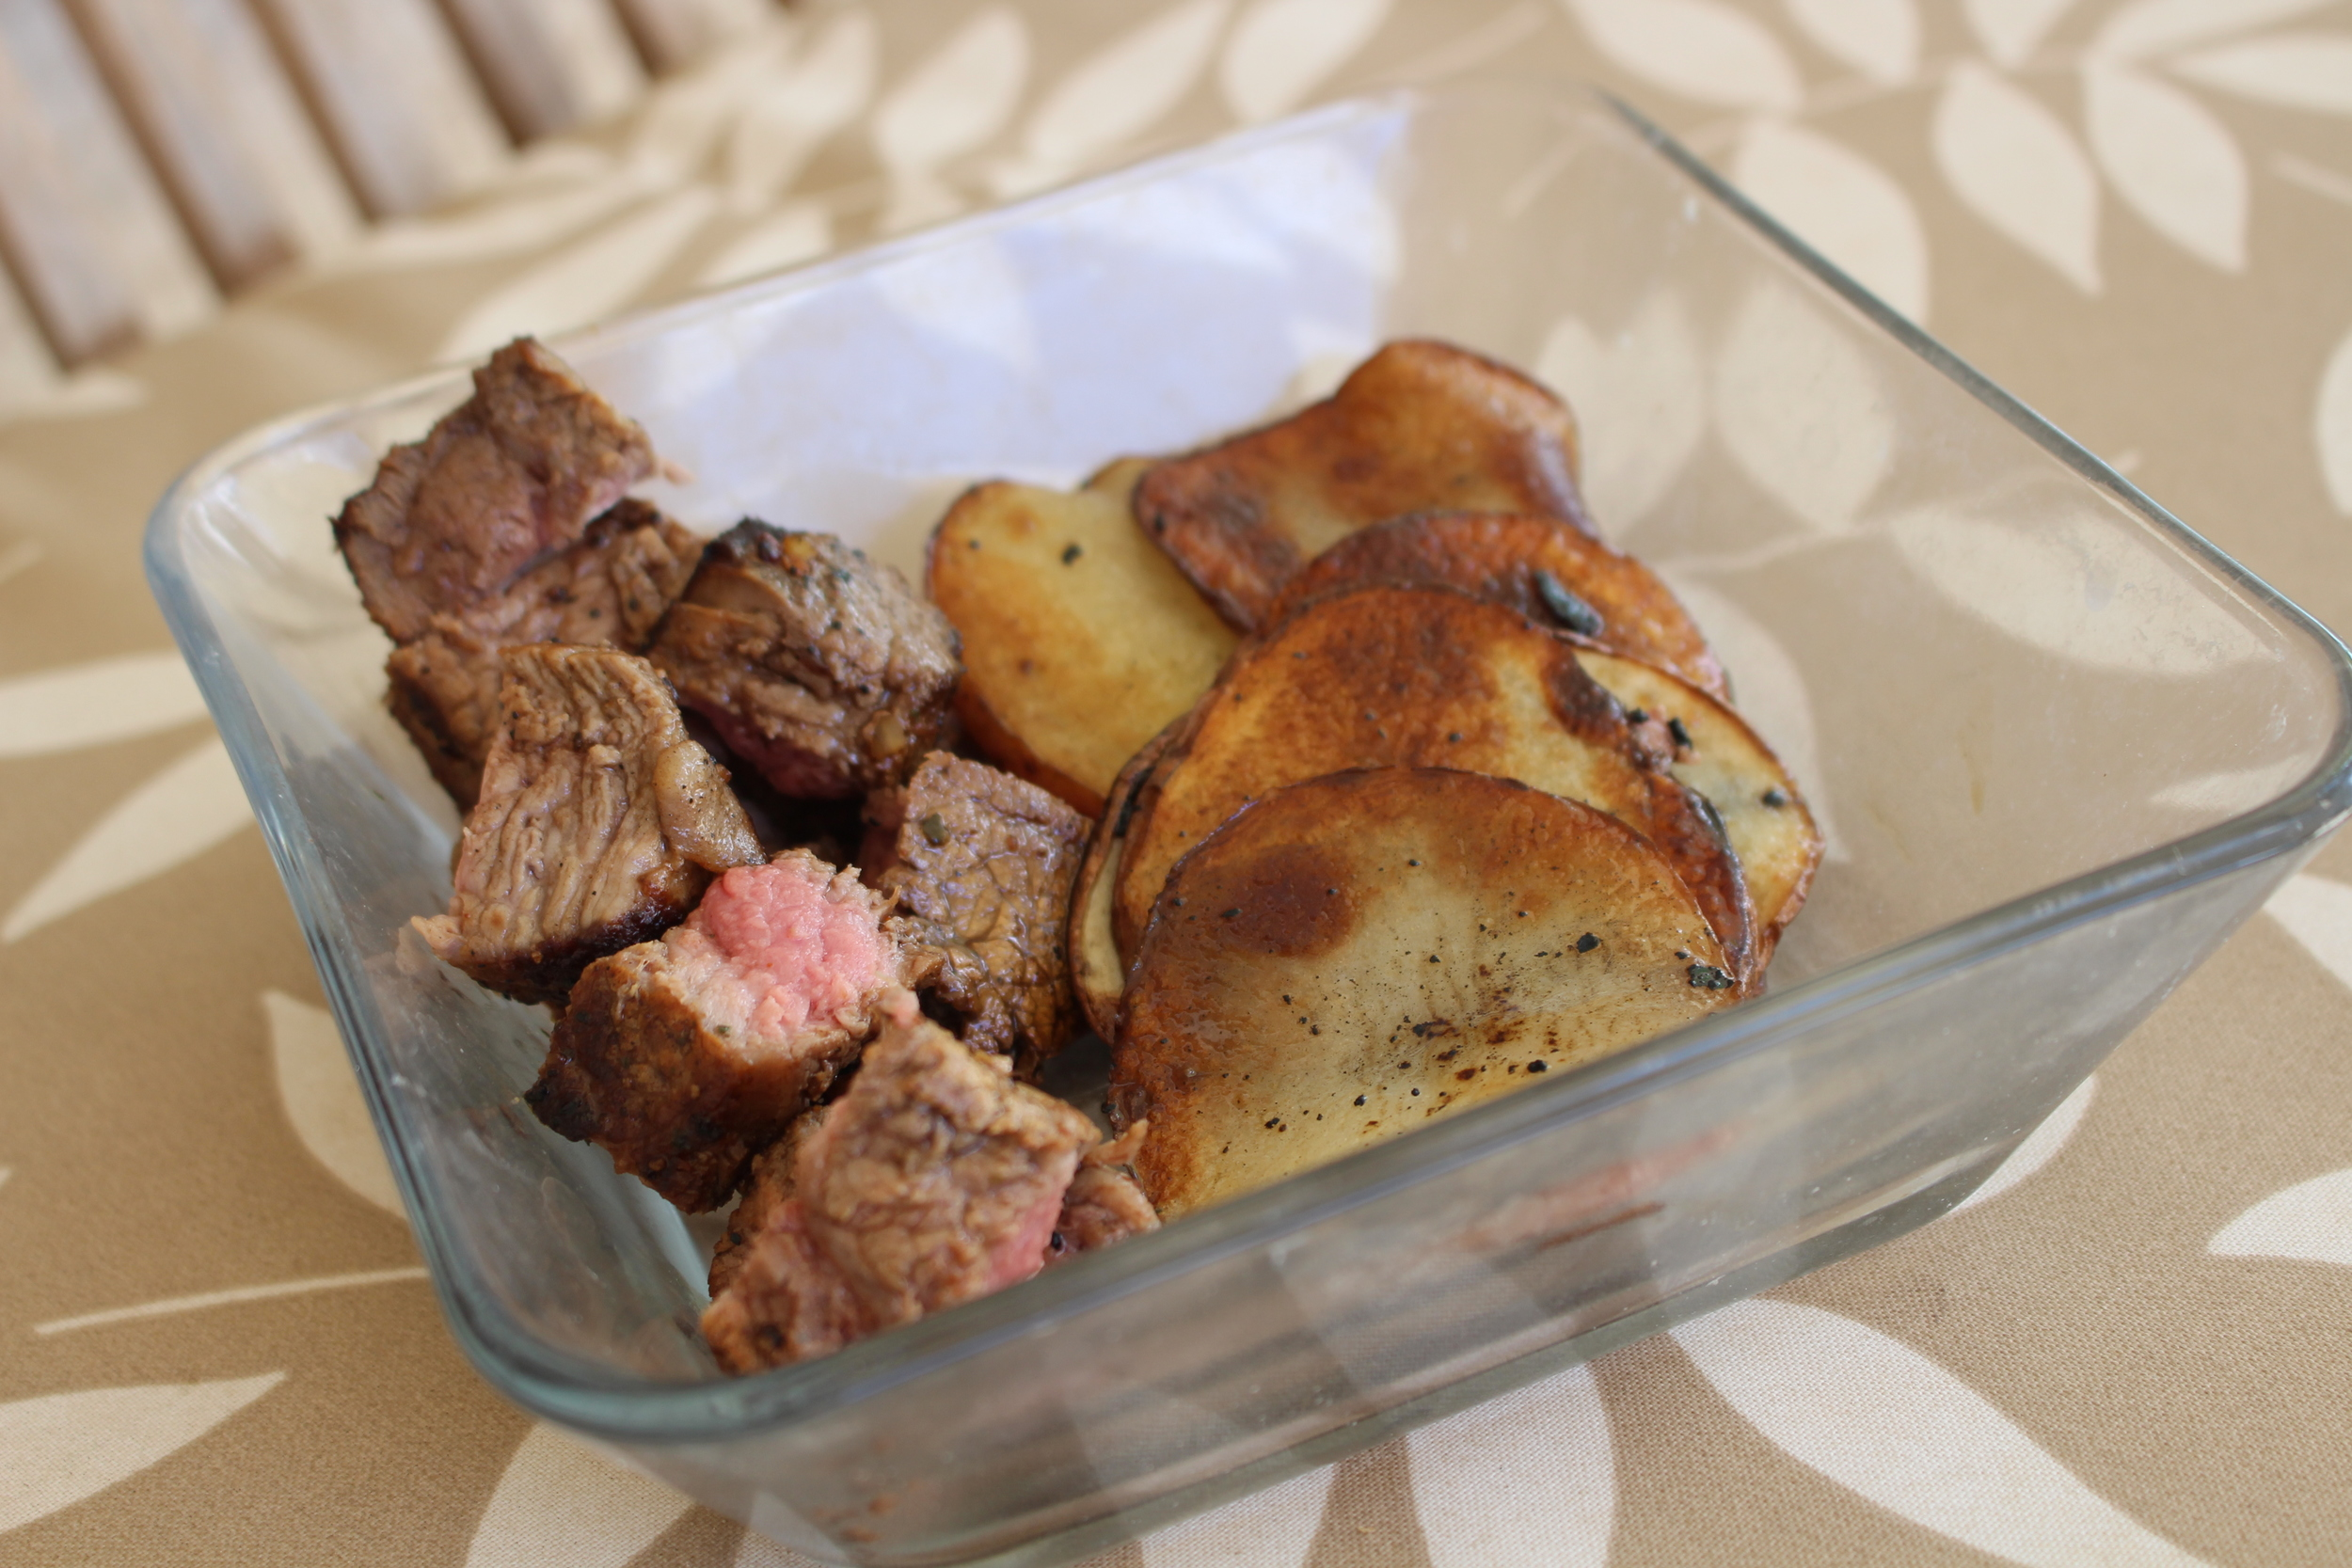 Lunch: Ribeye Steak with Red Potatoes fried in coconut oil!